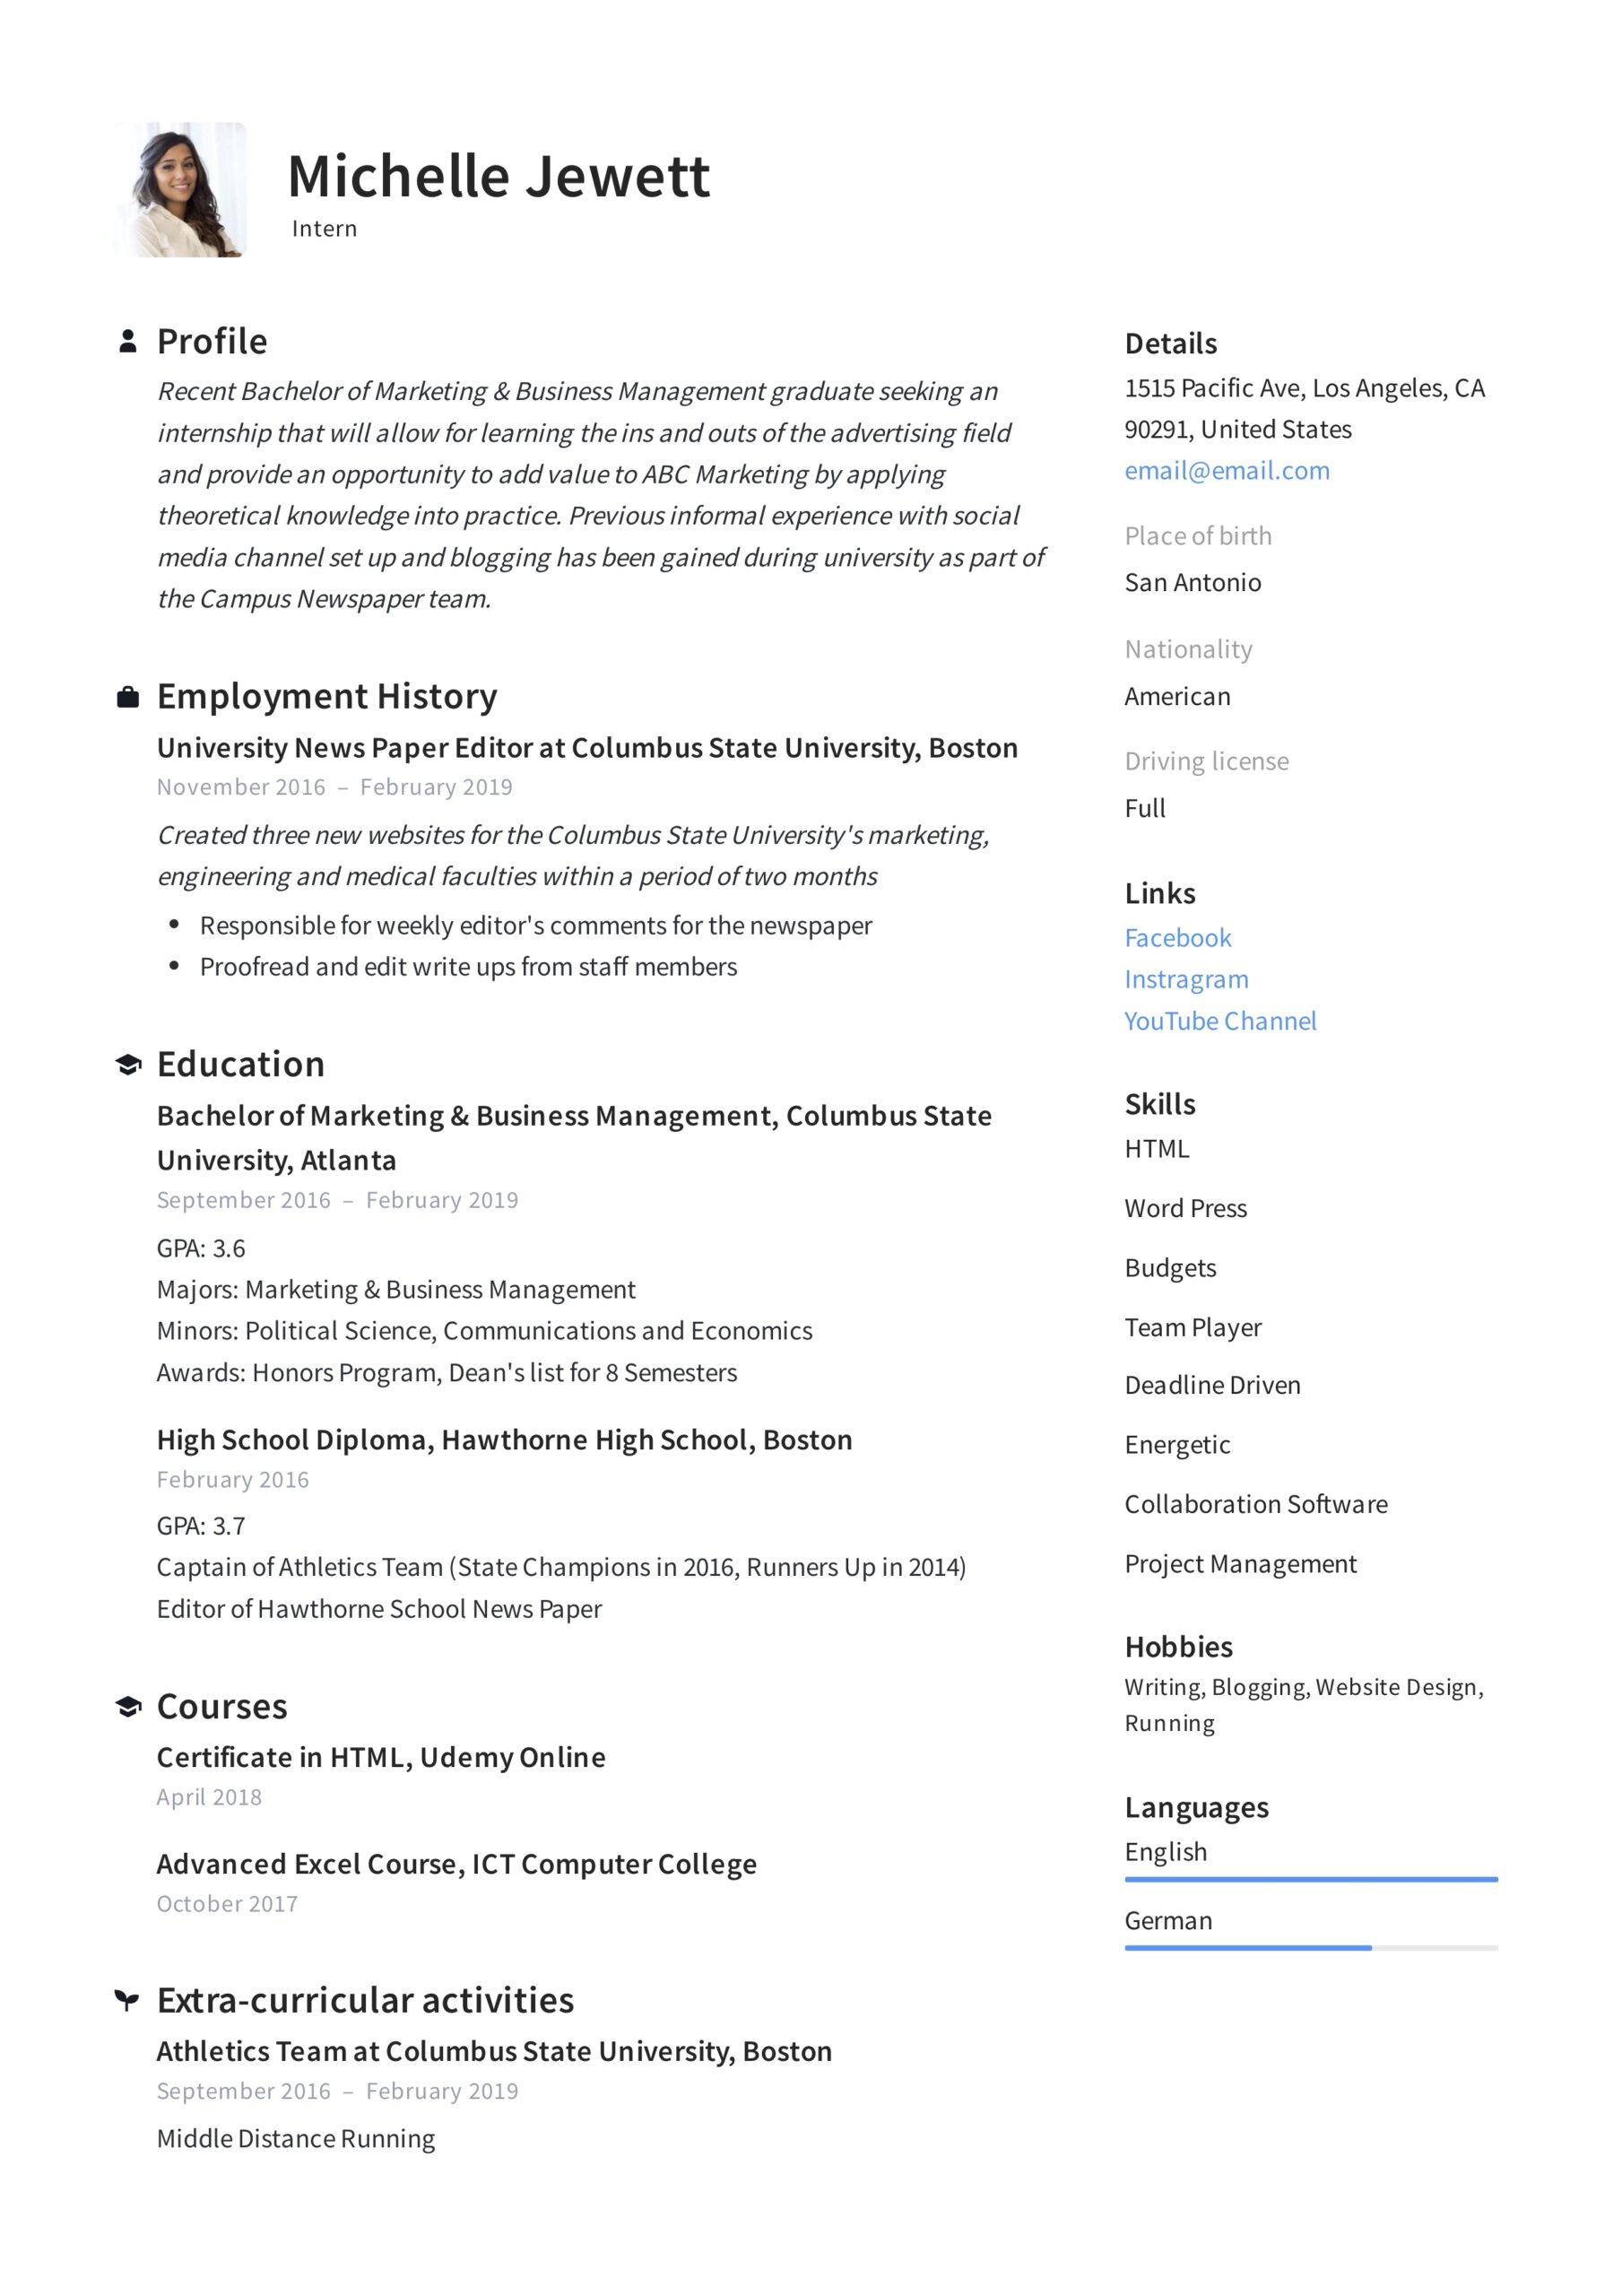 intern resume writing guide samples pdf political science objective examples internship Resume Political Science Resume Objective Examples